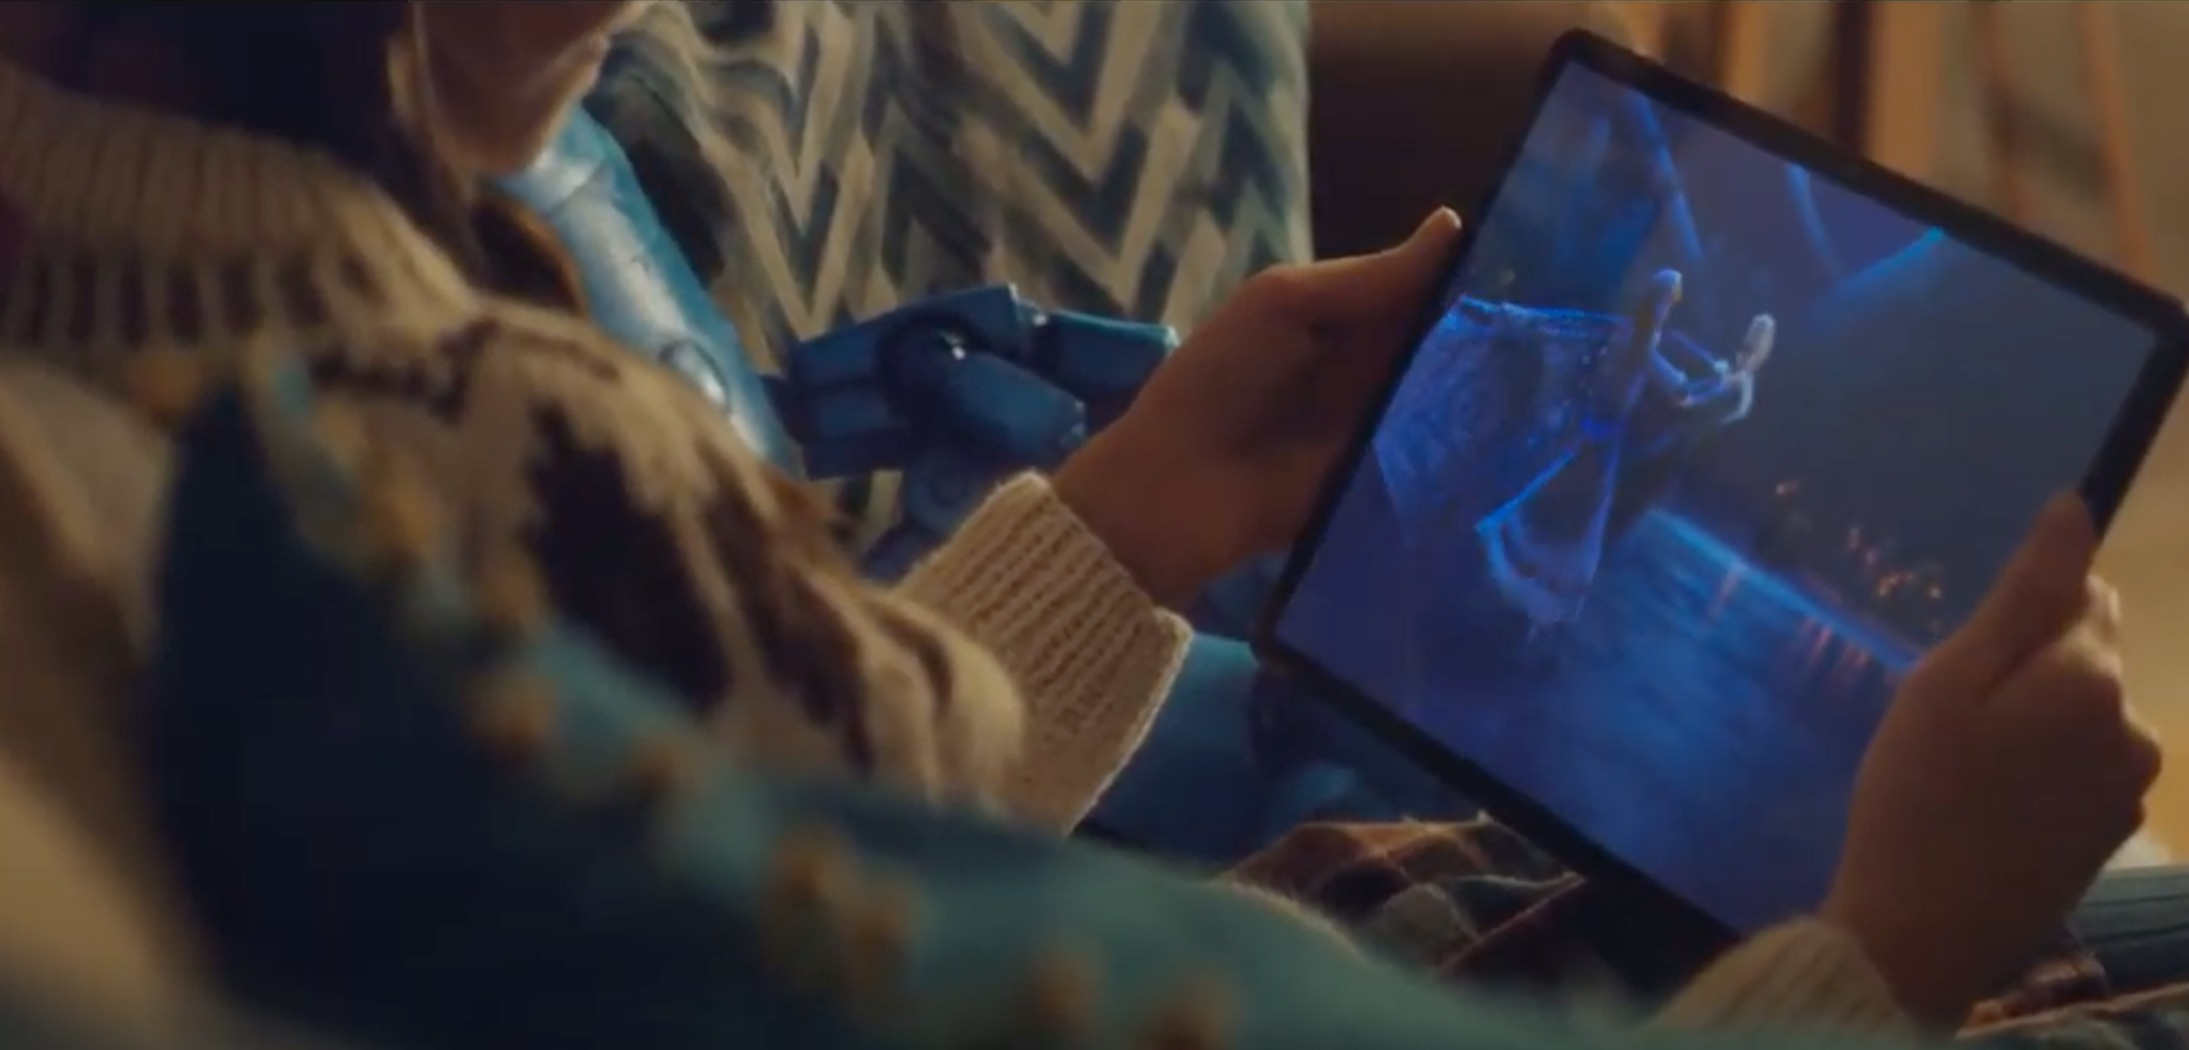 With lockdown preventing Darcy to participate in sports, the young girl is instead watching an ice-skating adventure from Frozen on her tablet